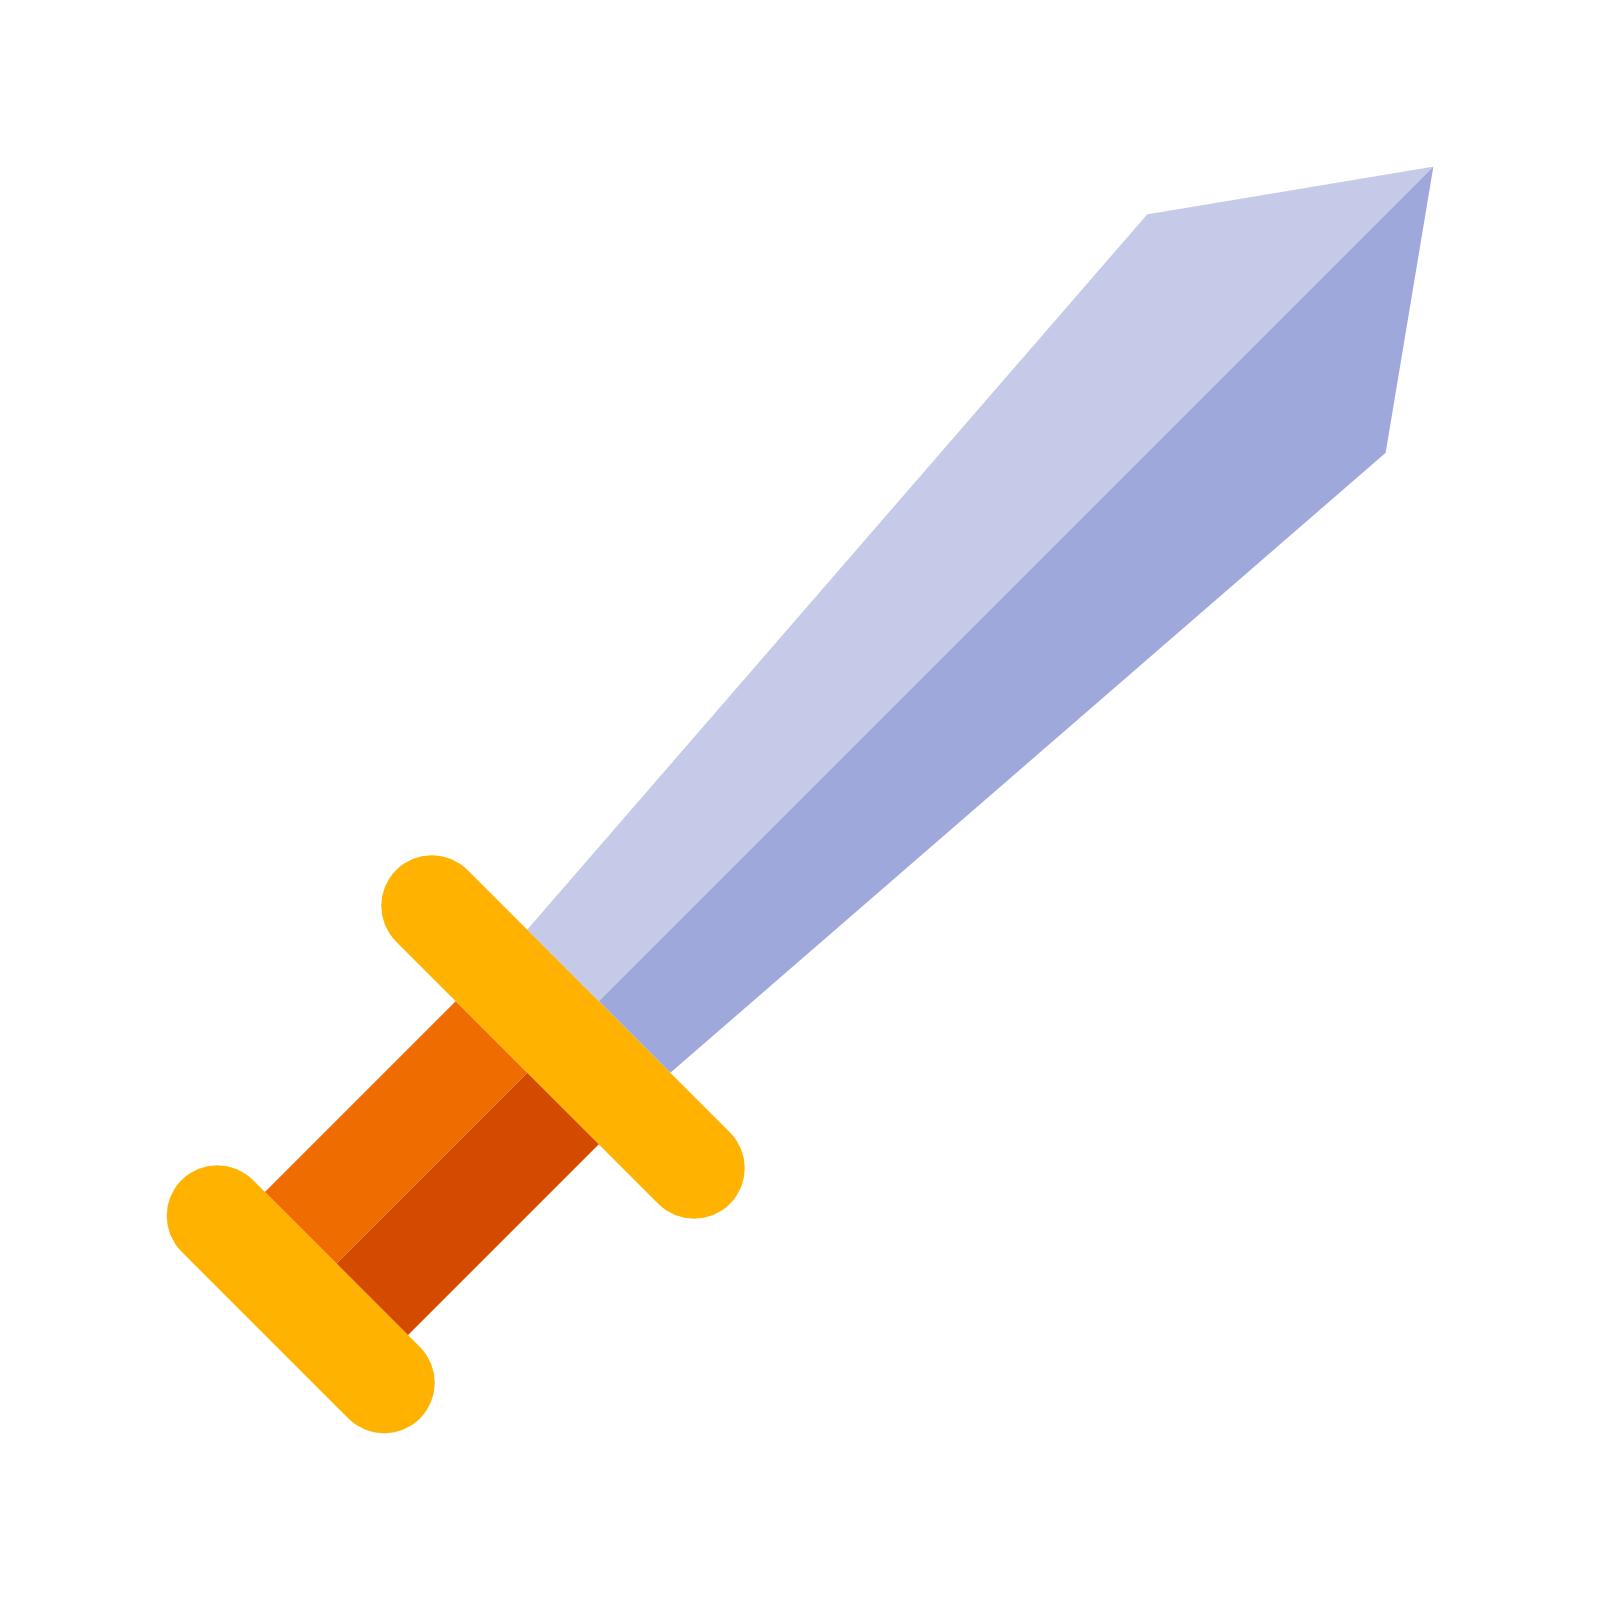 Sword clipart attack. Apocalyptic